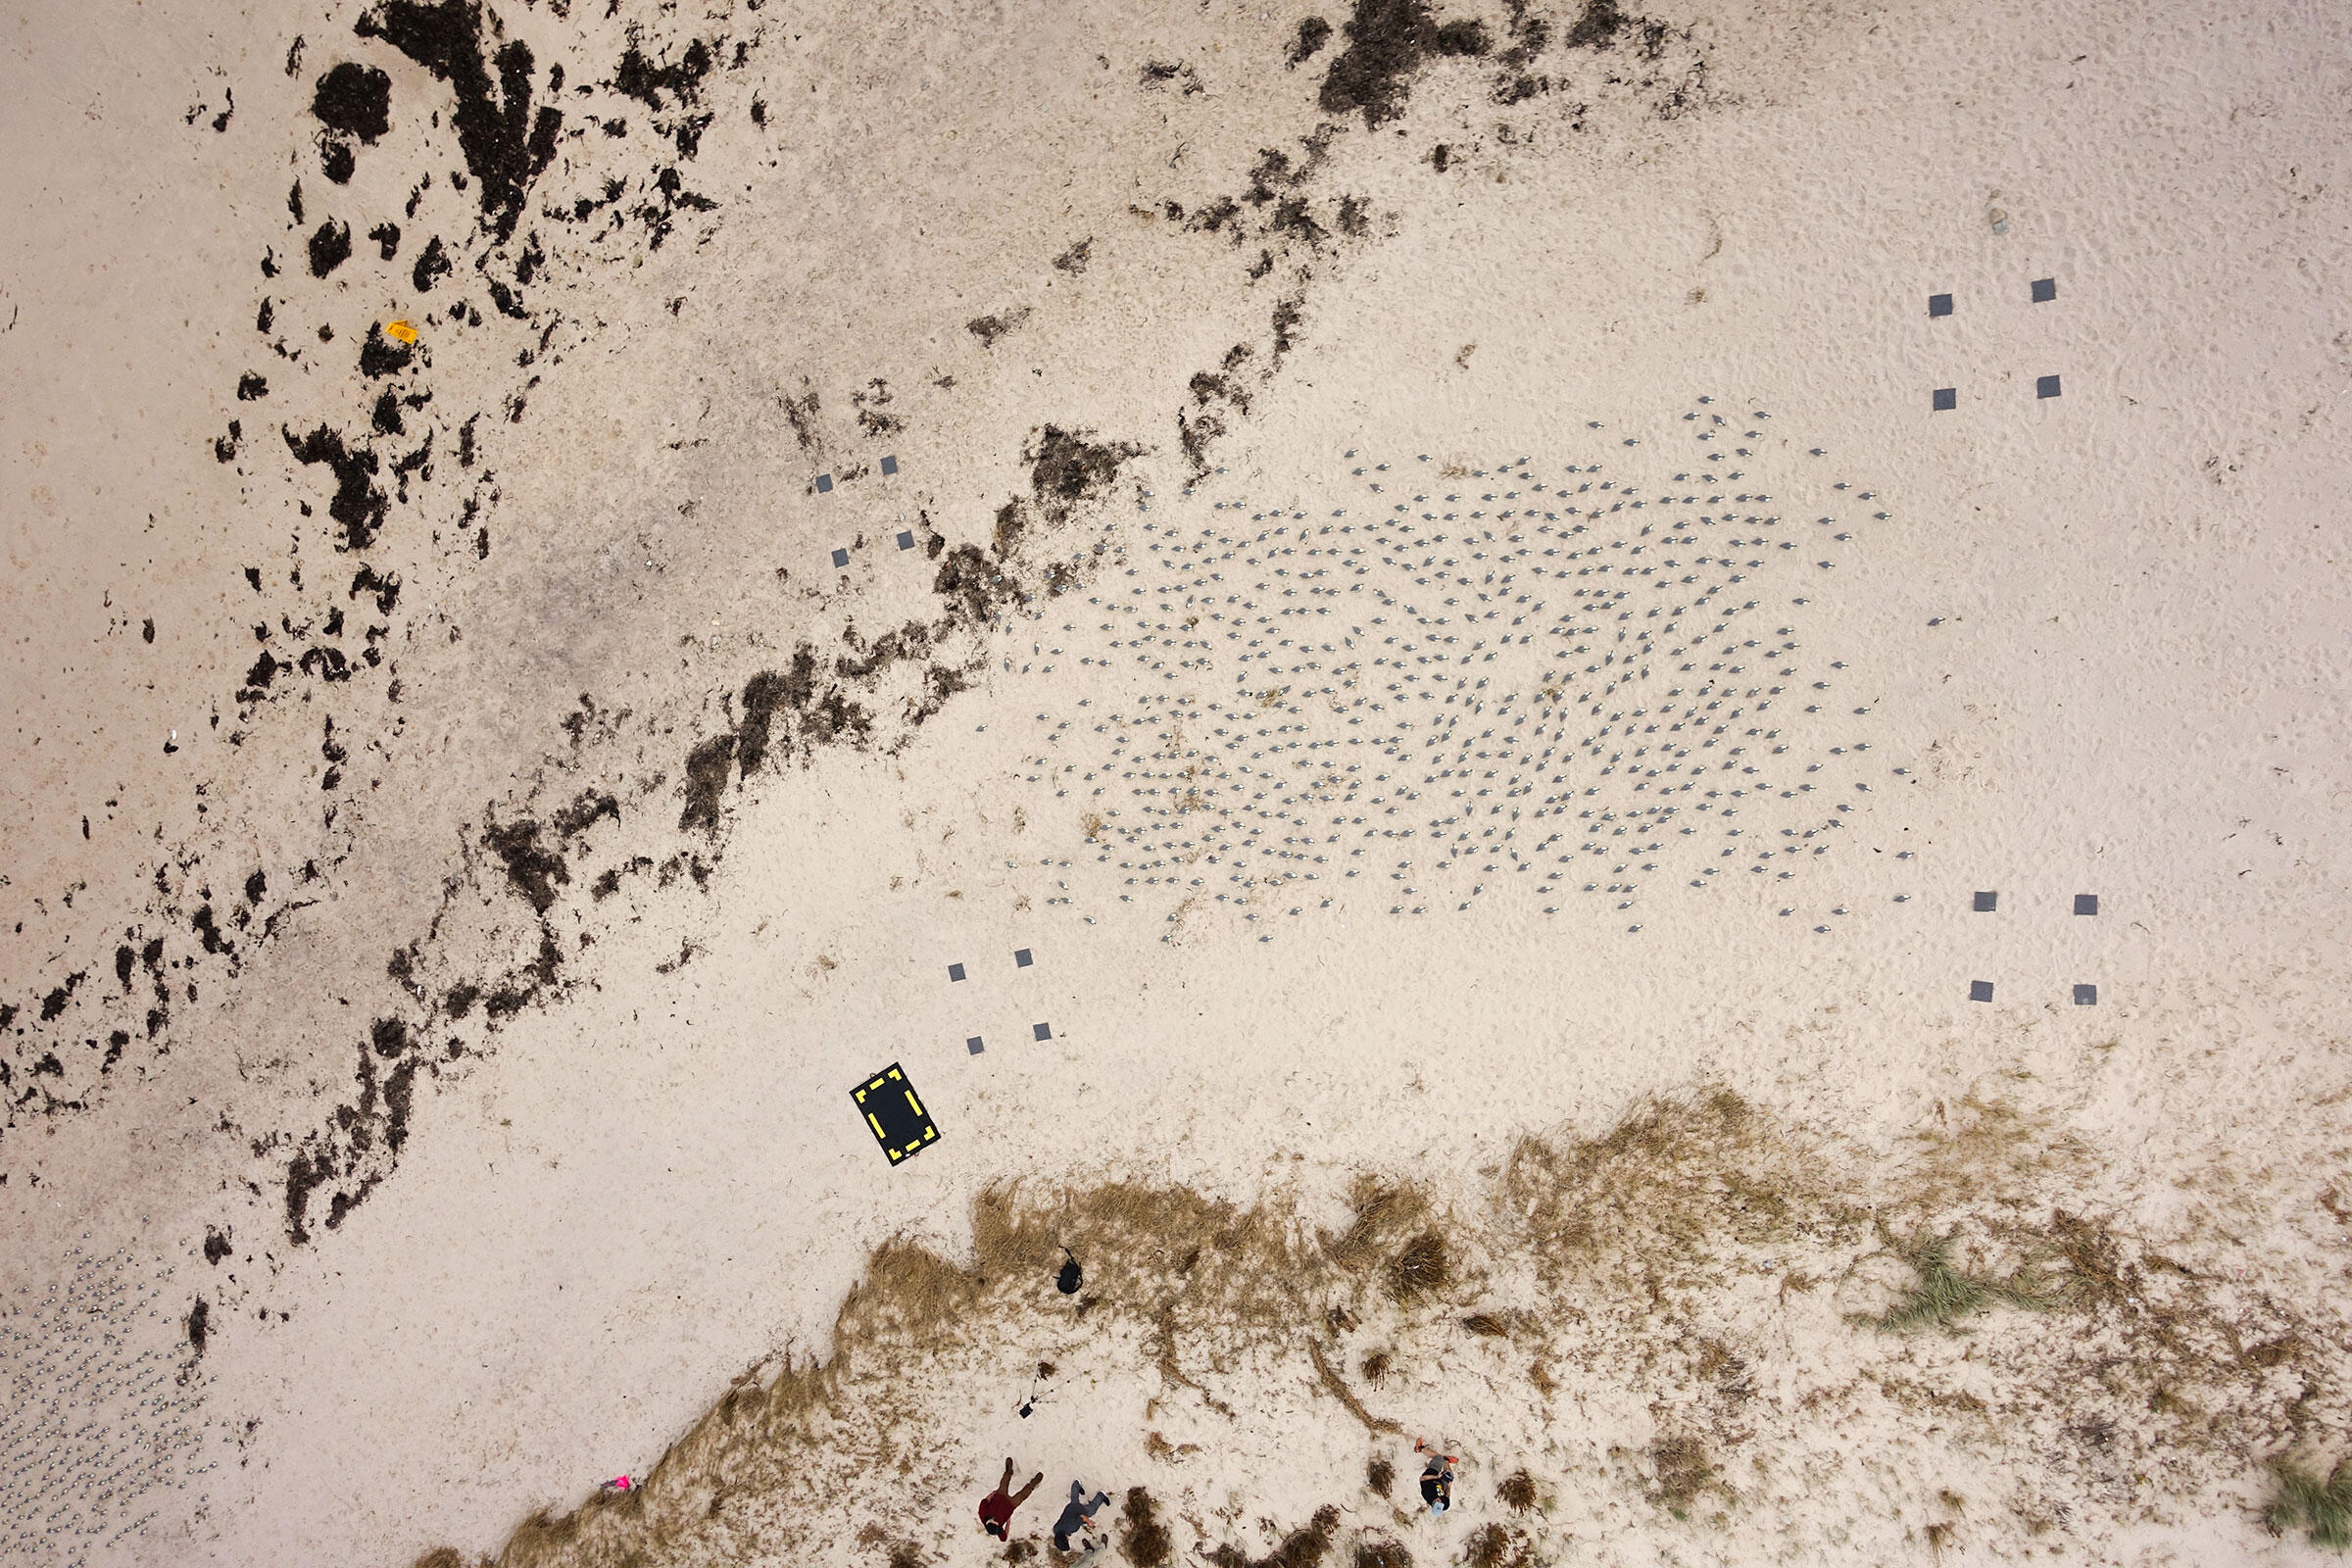 A drone's-eye view of one of Hodgson's decoy colonies, ready to be counted. Jarrod Hodgson